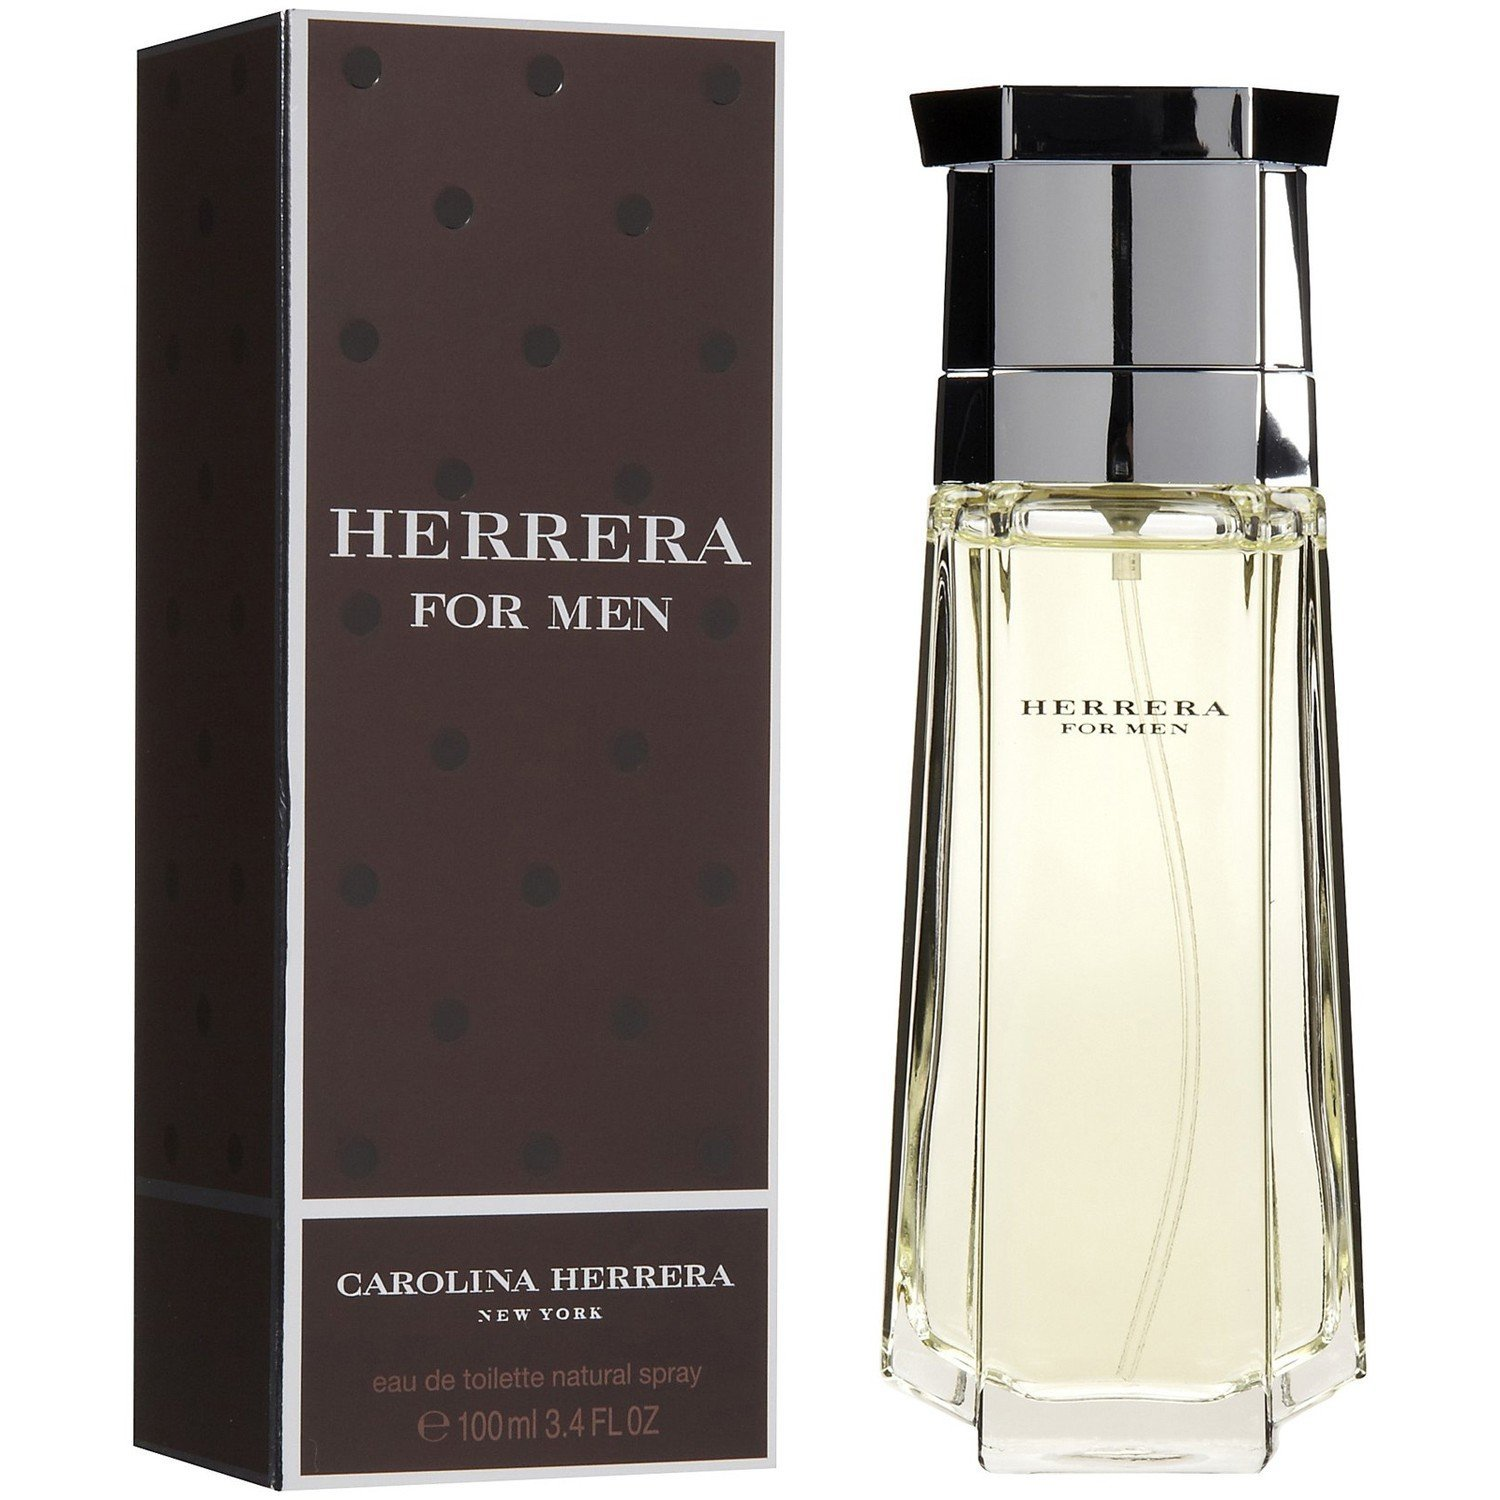 86909ed85c Carolina Herrera (EDT,Men,TESTER,100ml) - Electronic Marketplace